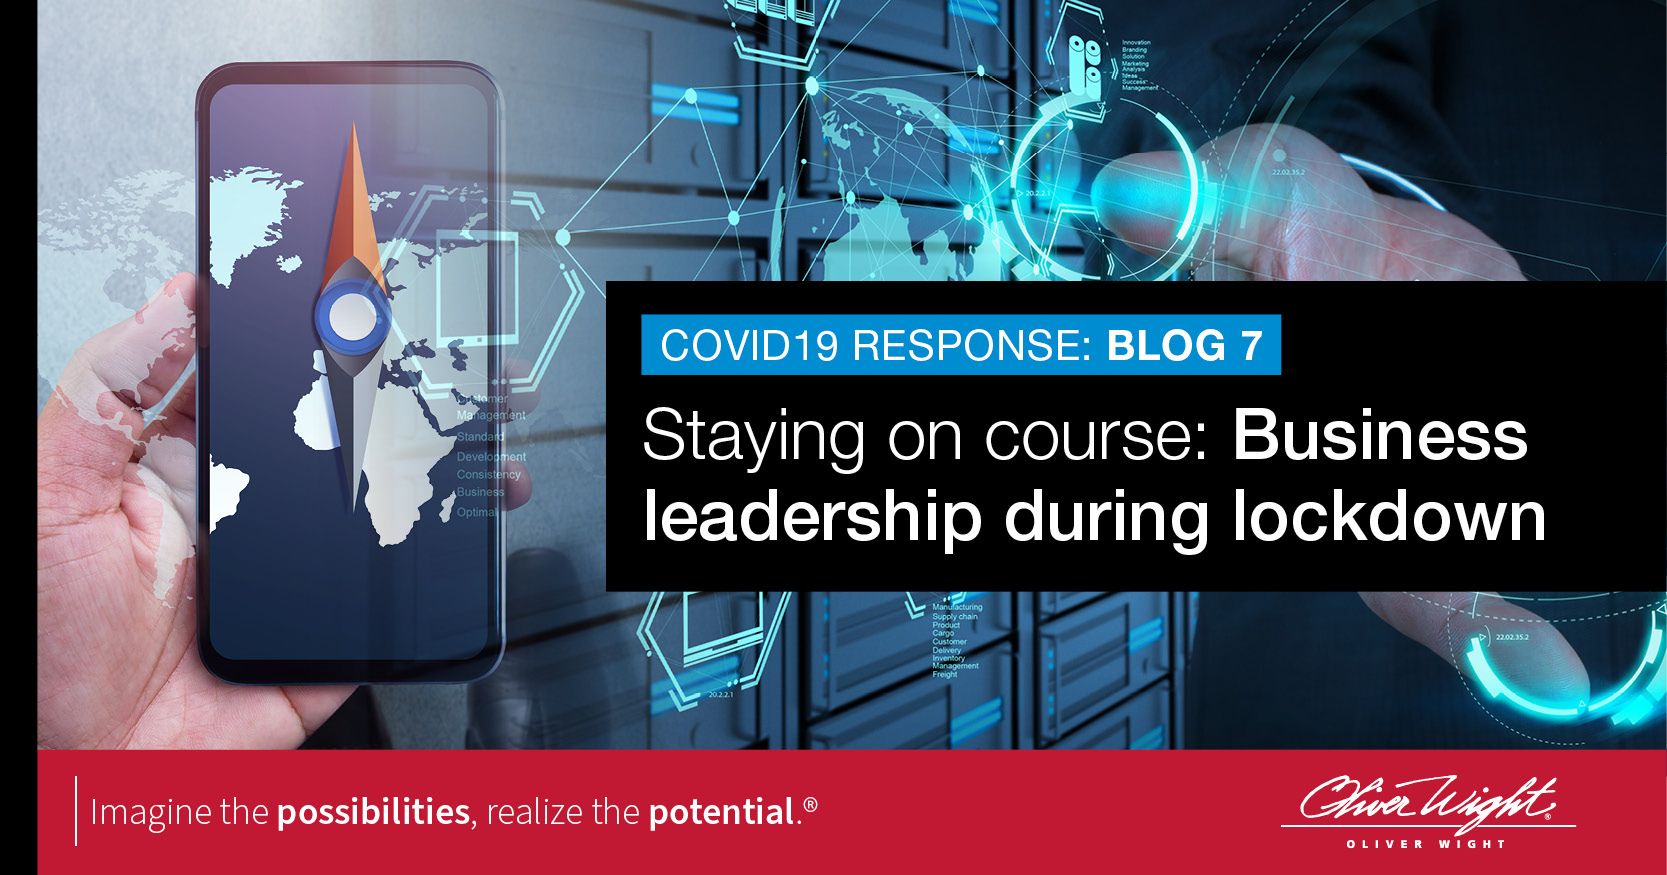 Staying on course: Business leadership during lockdown